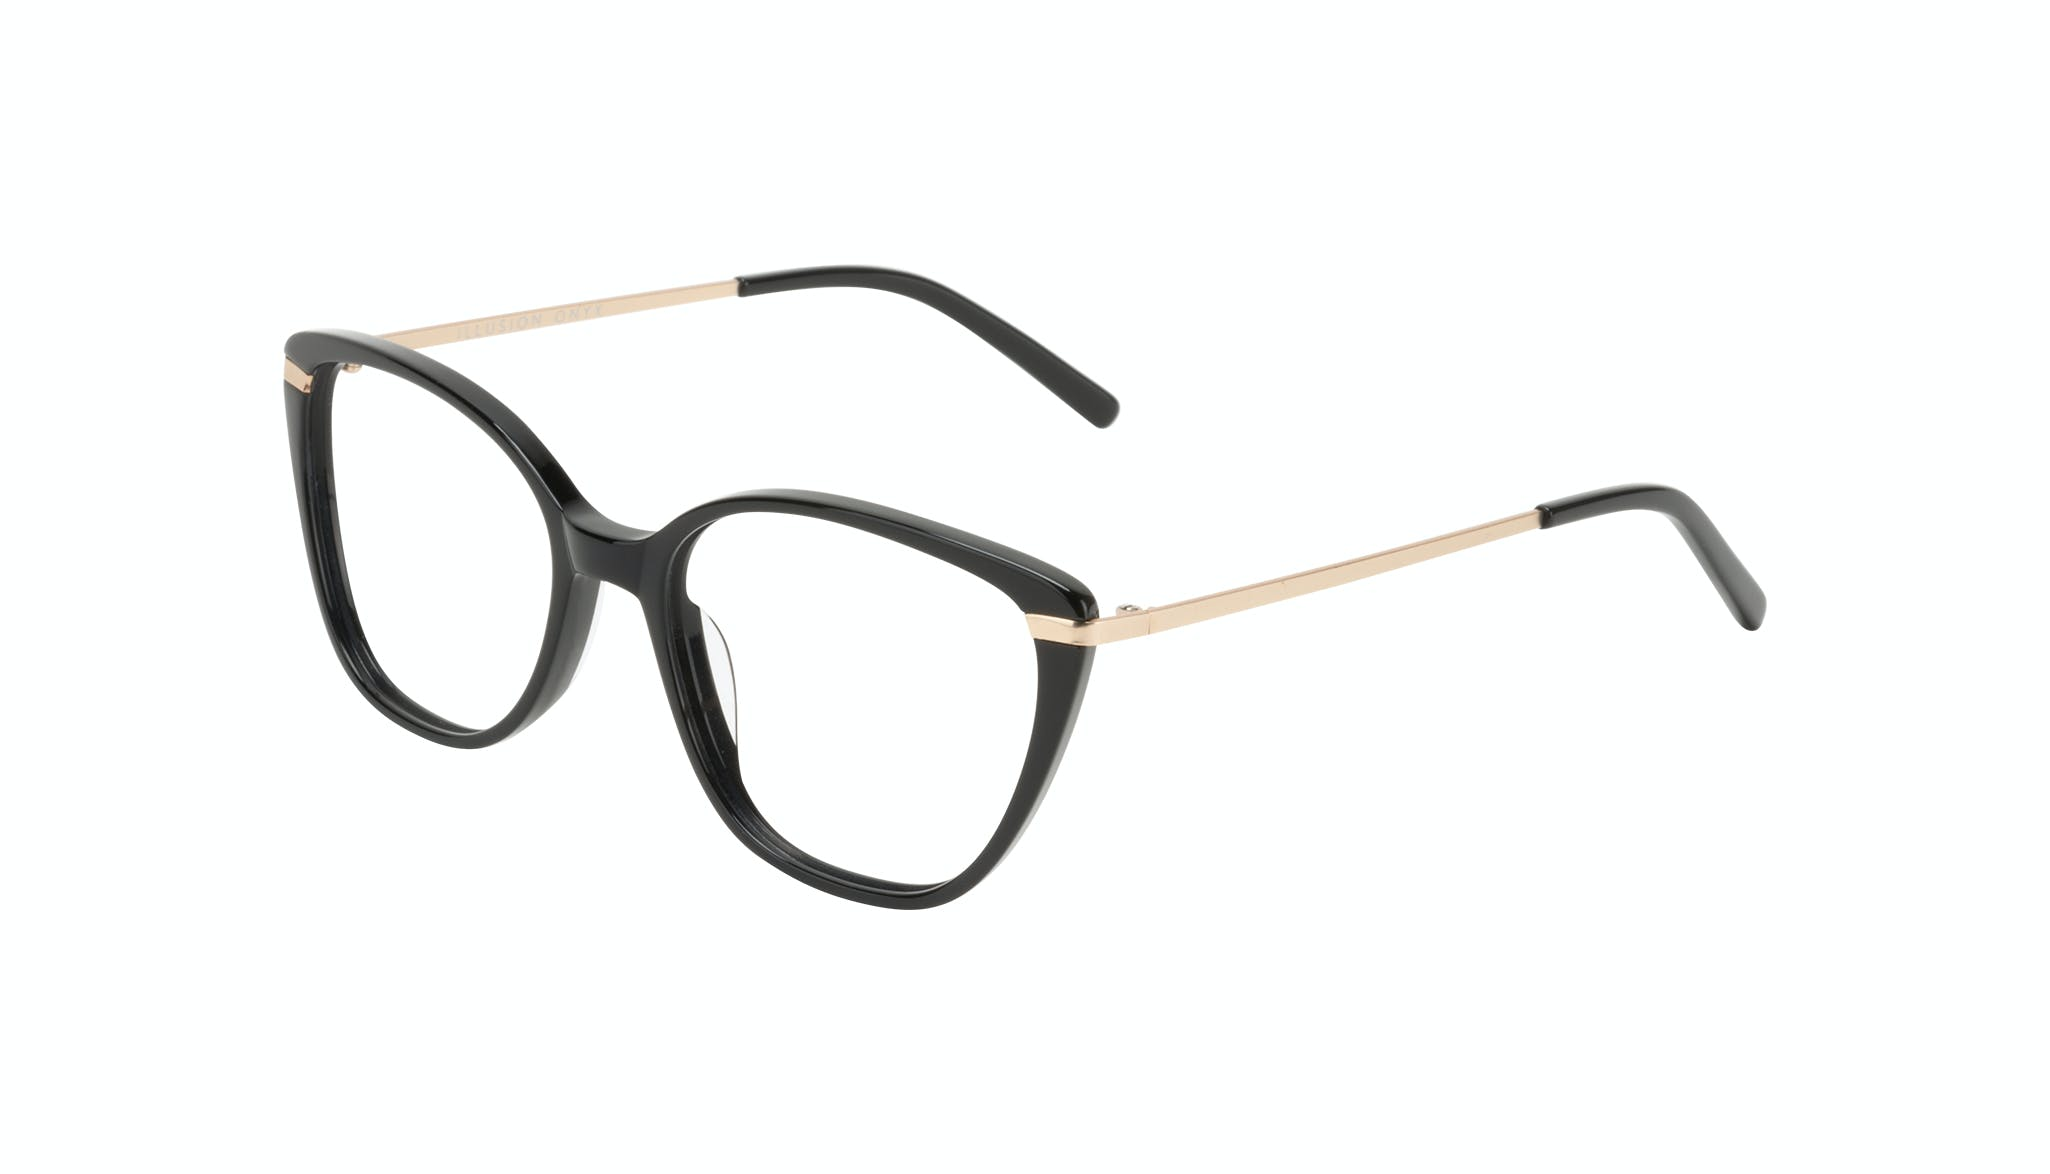 Affordable Fashion Glasses Cat Eye Rectangle Square Eyeglasses Women Illusion Onyx Tilt